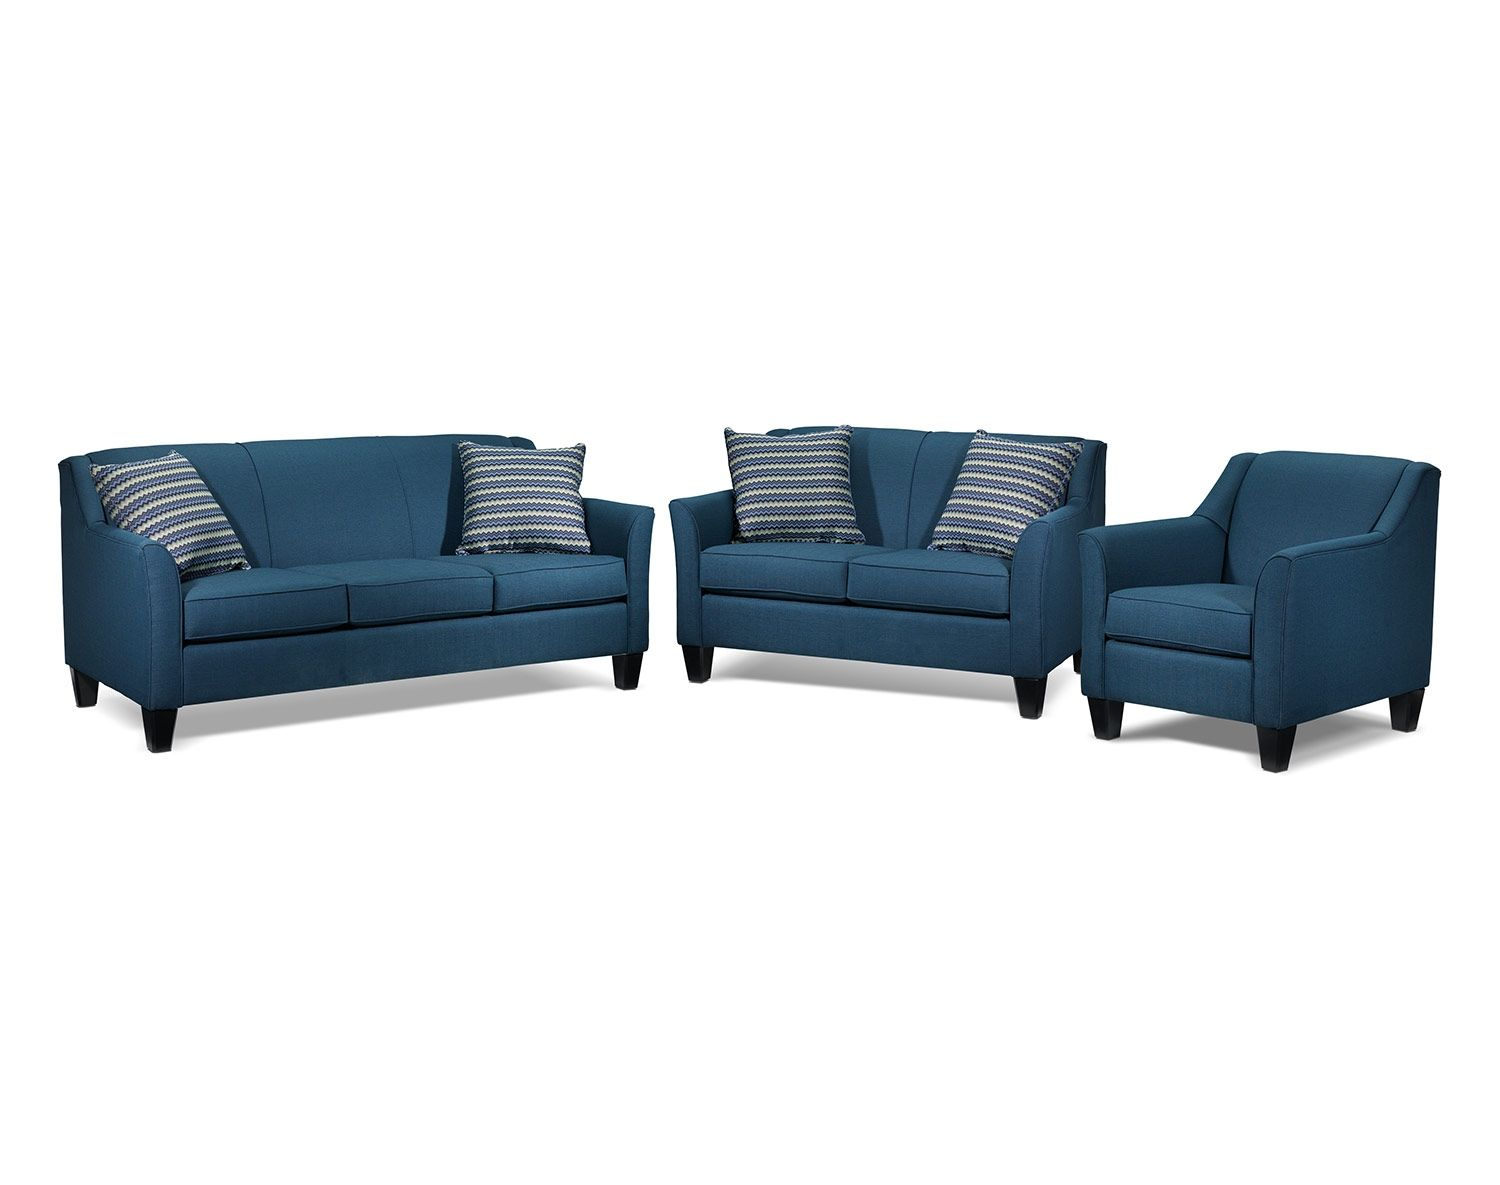 Leon S Mackenzie Sofa Outdoor Pallet Plans Living Room Furniture The Collection